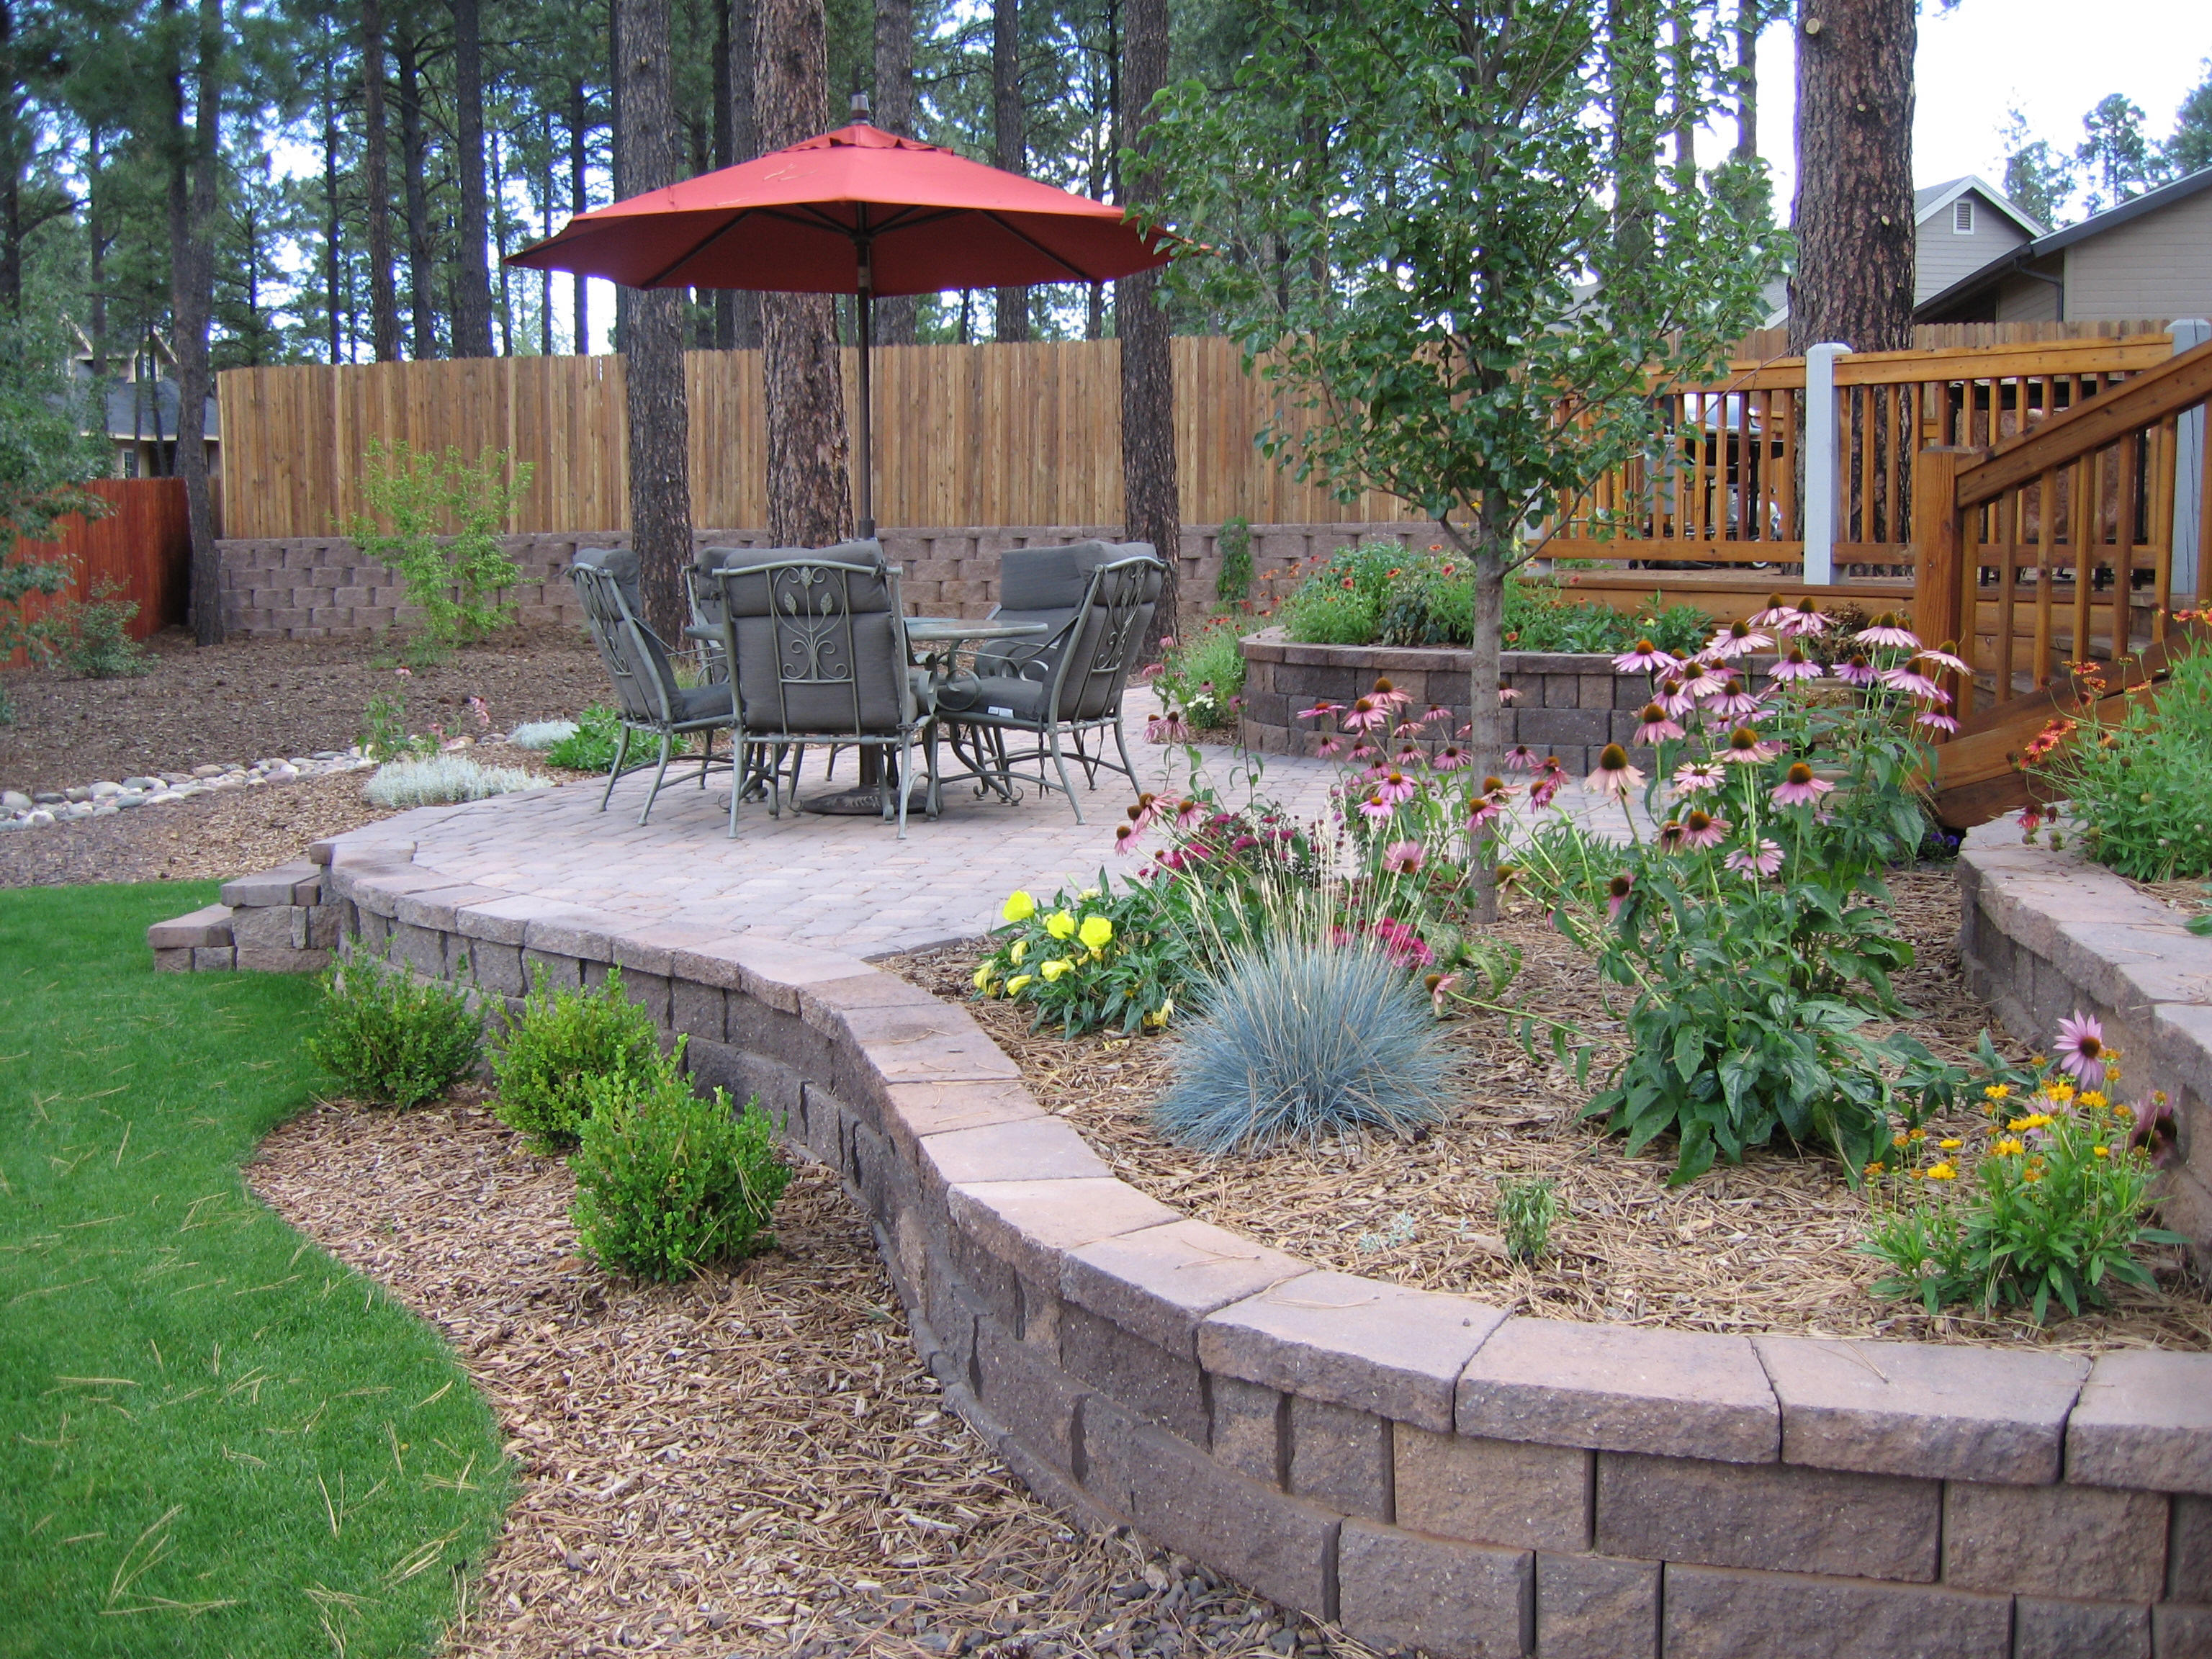 Backyard Landscaping Design Ideas ideas backyard landscaping dog friendly small backyard landscape ideas home design ideas exterior small backyard landscaping Backyard Landscaping Ideas With Rocks Simple Rock Garden Landscaping Designs Ideas Pictures And Diy Plans Backyard